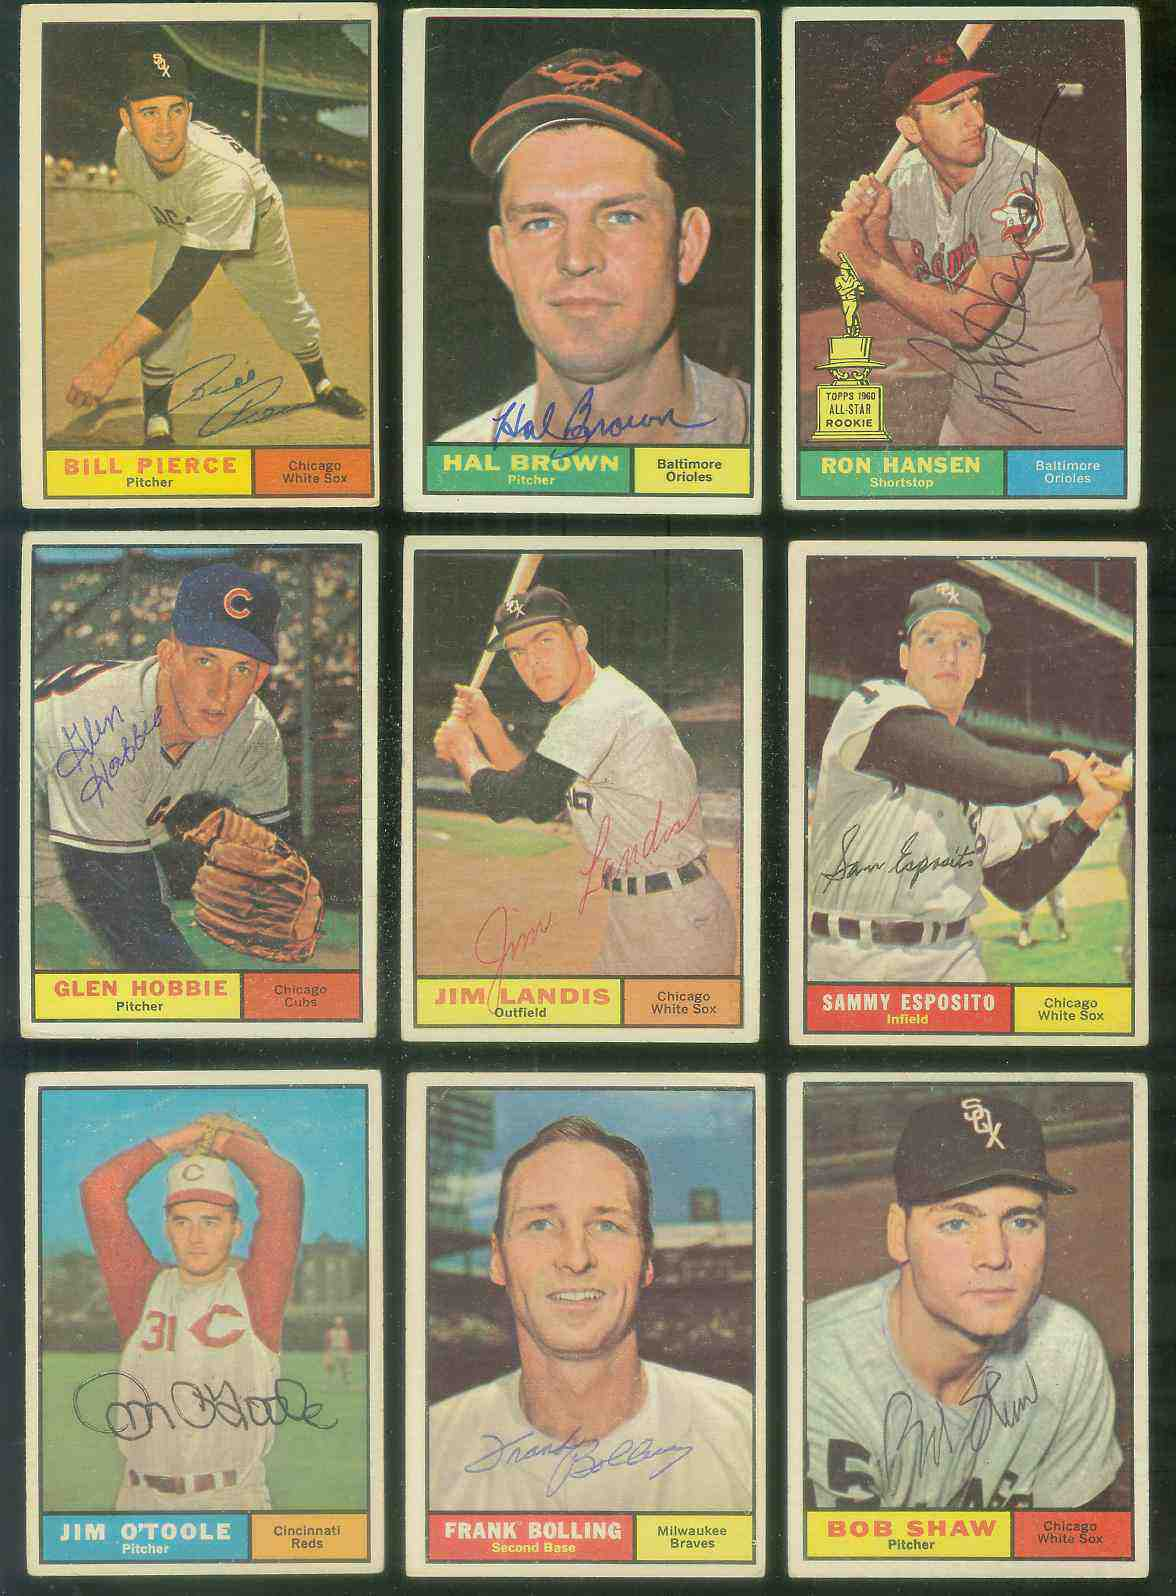 1961 Topps AUTOGRAPHED #271 Jim Landis w/PSA/DNA Auction LOA (White Sox) [d Baseball cards value